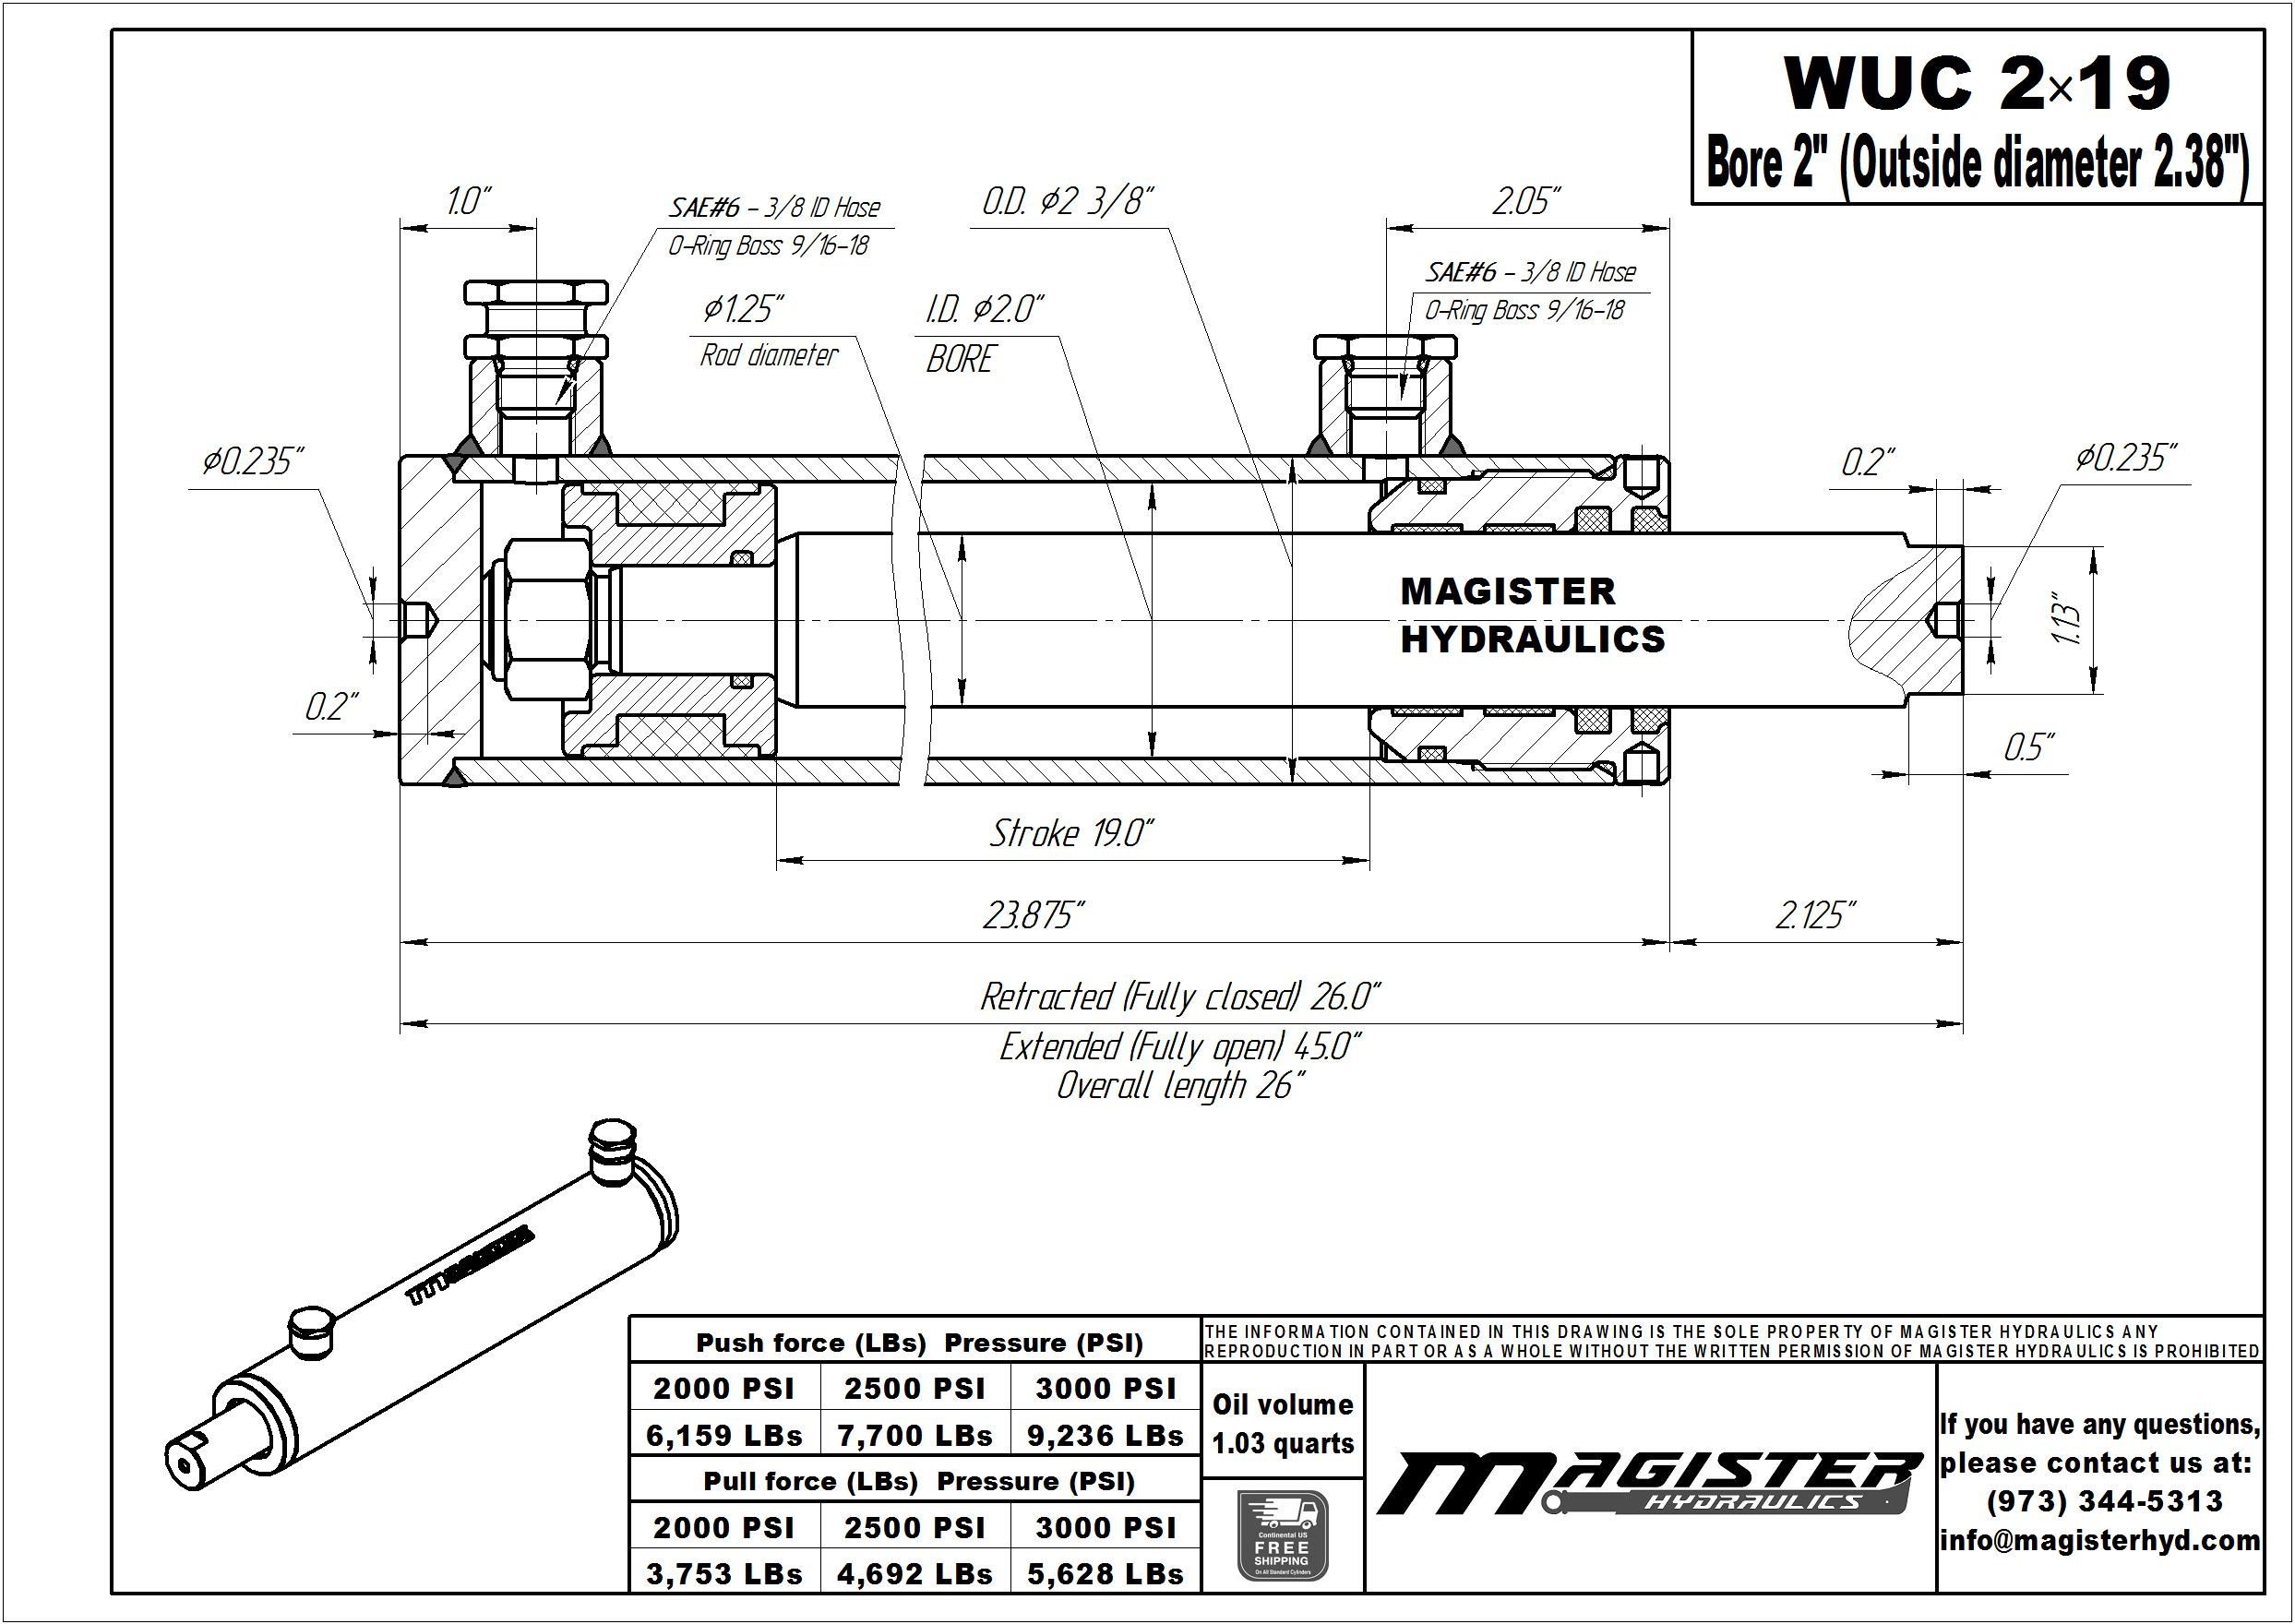 2 bore x 19 stroke hydraulic cylinder, welded universal double acting cylinder | Magister Hydraulics